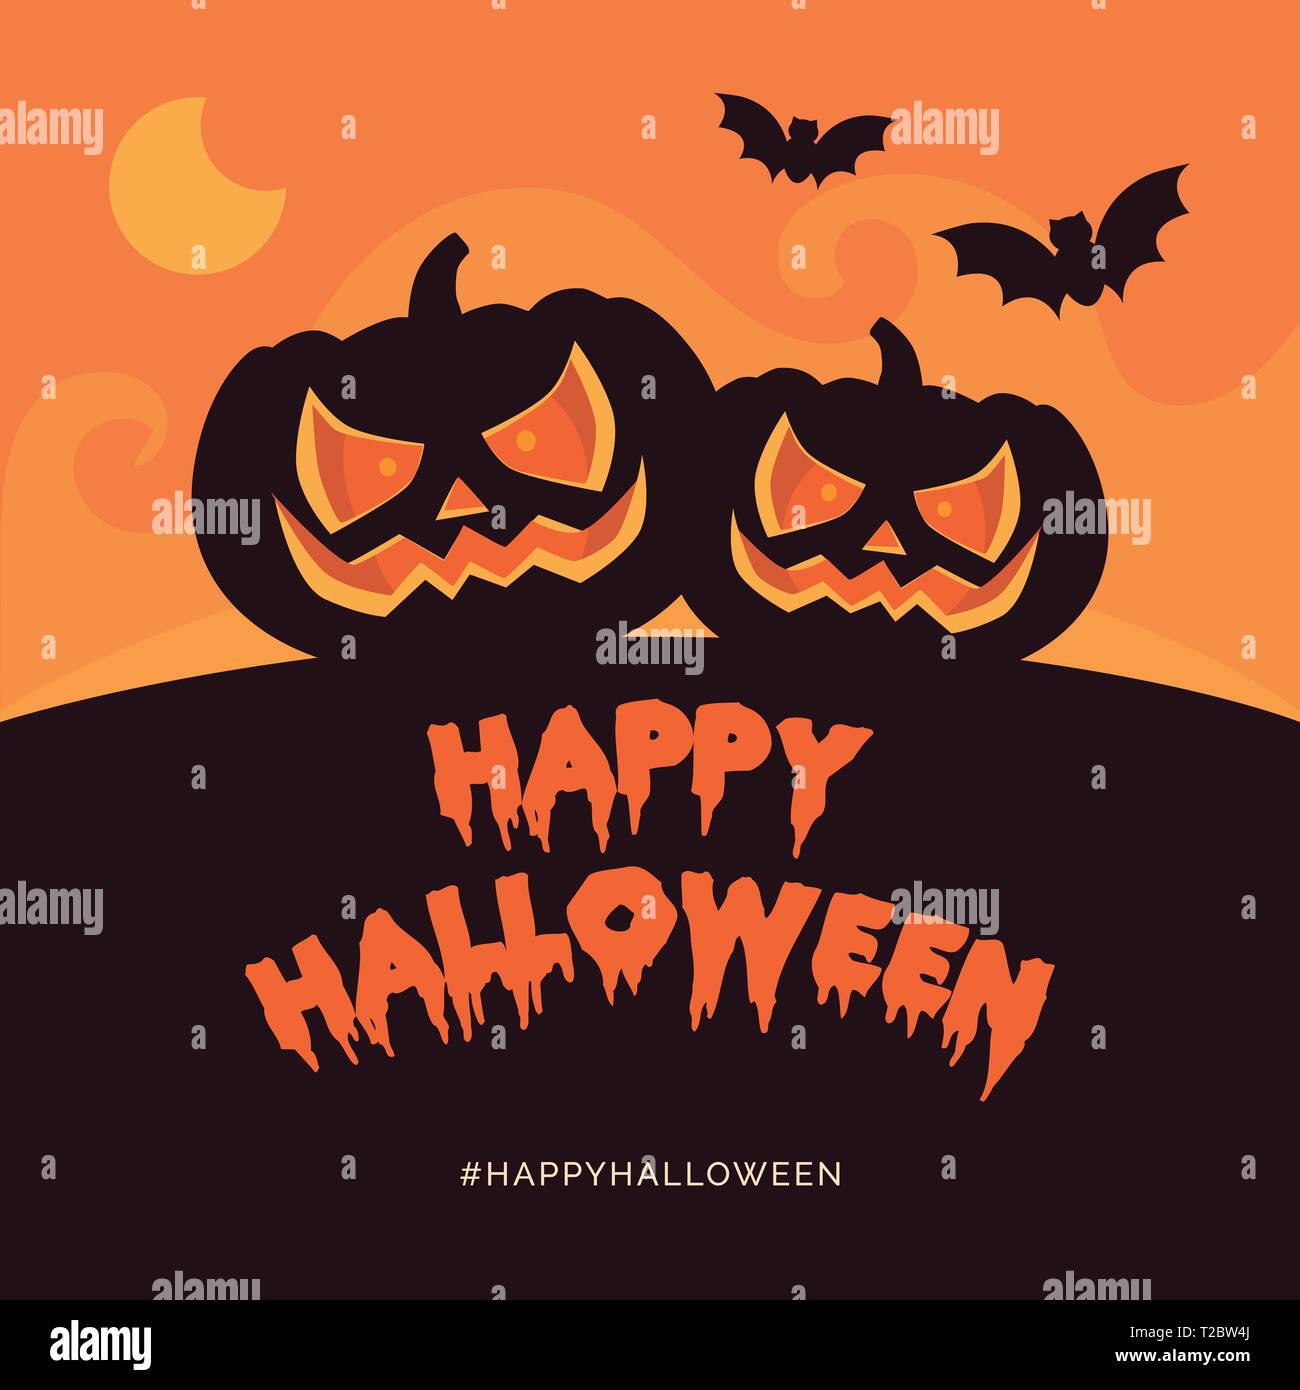 Happy halloween holiday card and social media post with pumpkins and bats - Stock Vector